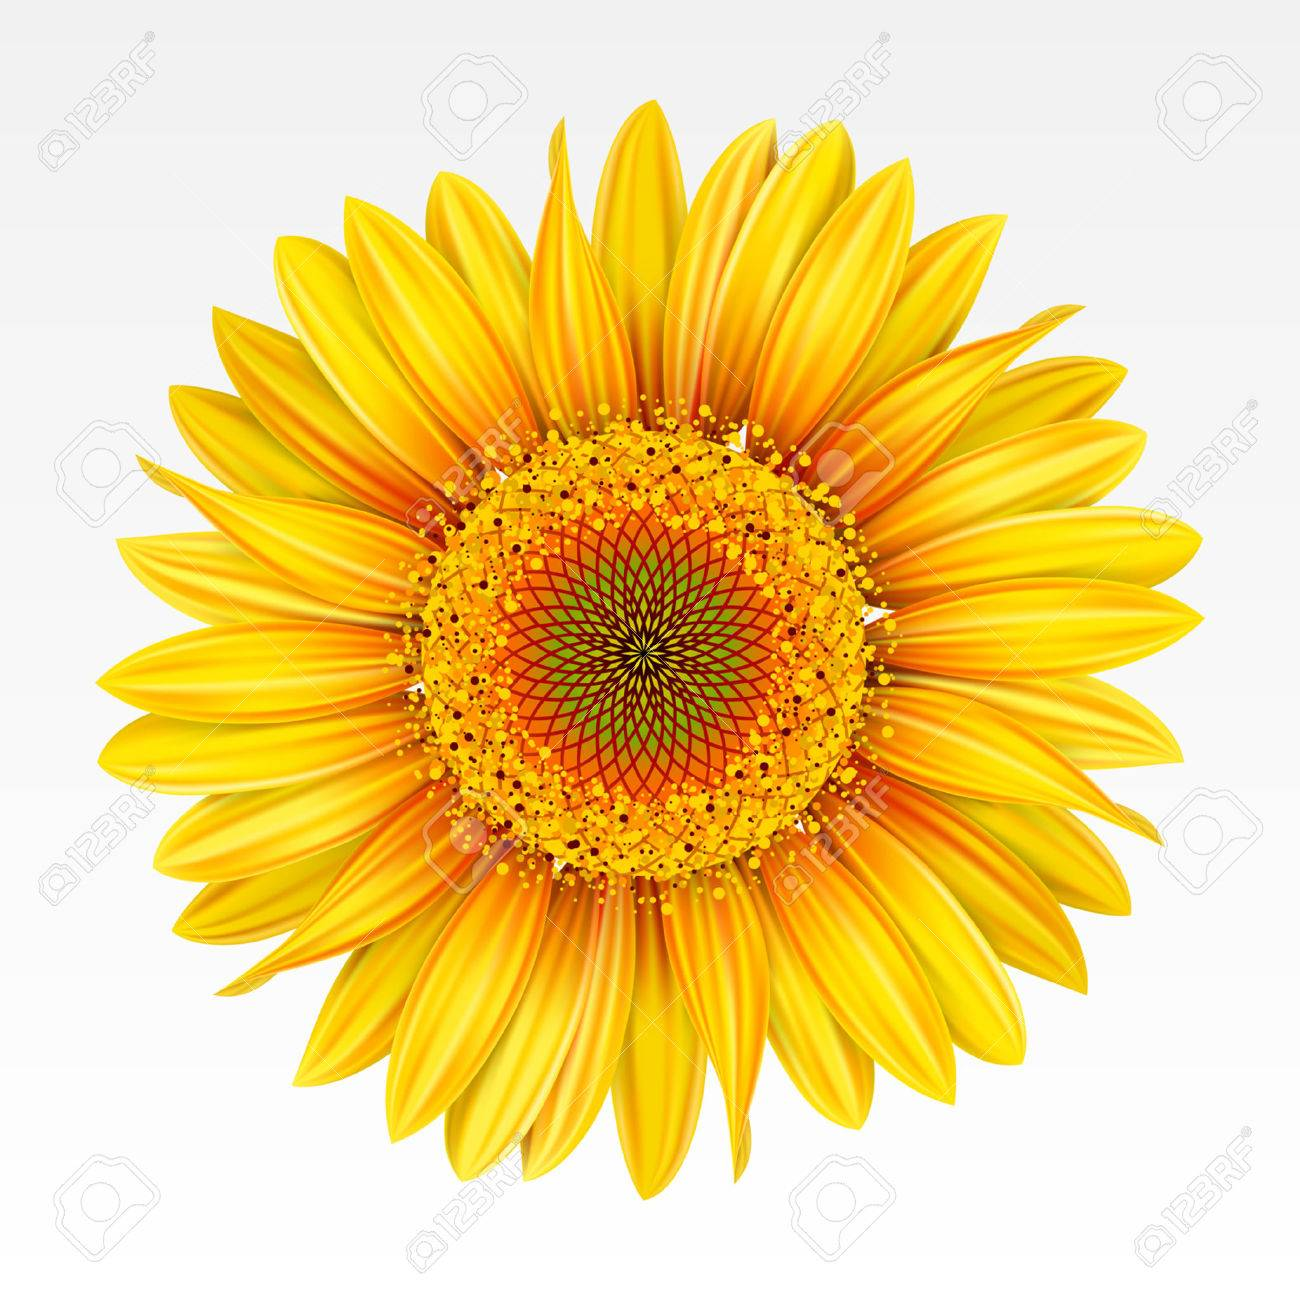 31424 sunflower cliparts stock vector and royalty free sunflower yellow sunflower on the white background mesh illustration mightylinksfo Choice Image